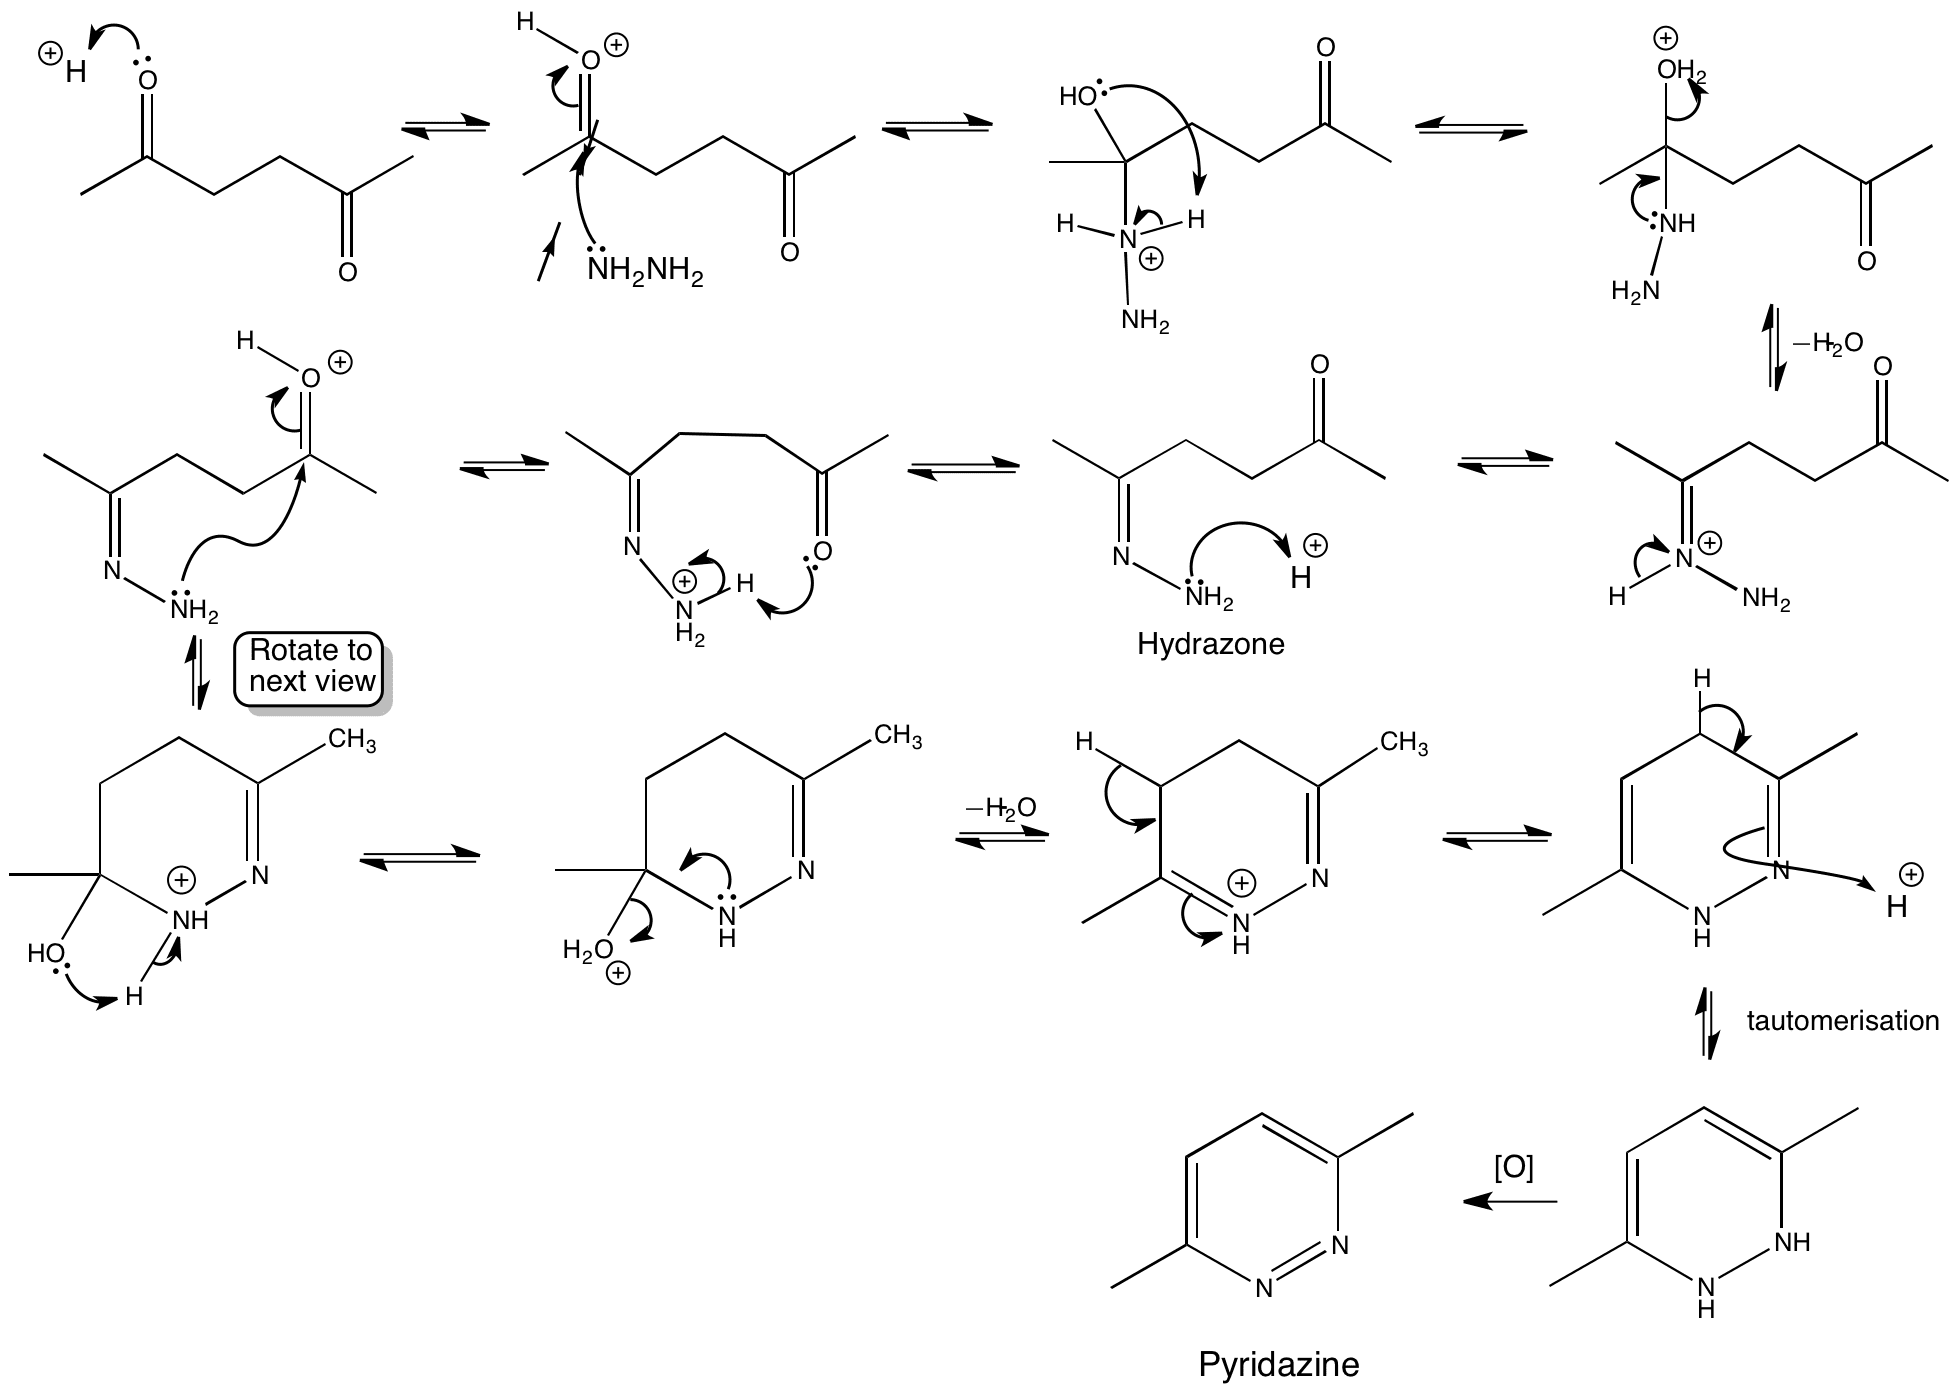 Synthesis of pyridazine fey thesis gulit